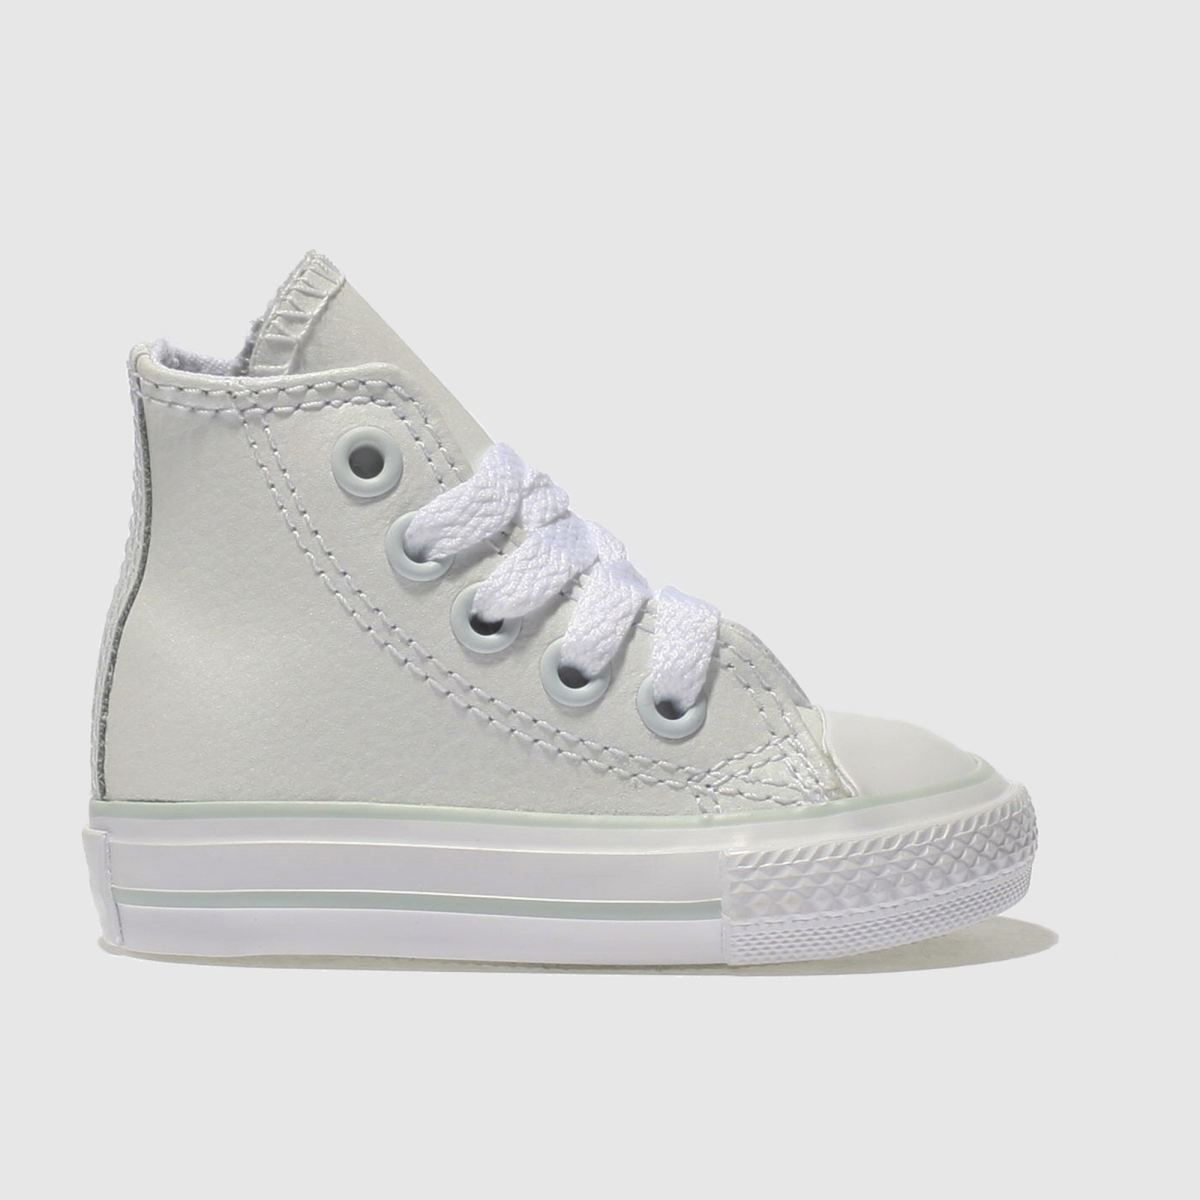 Converse White All Star Hi Leather Girls Toddler Toddler